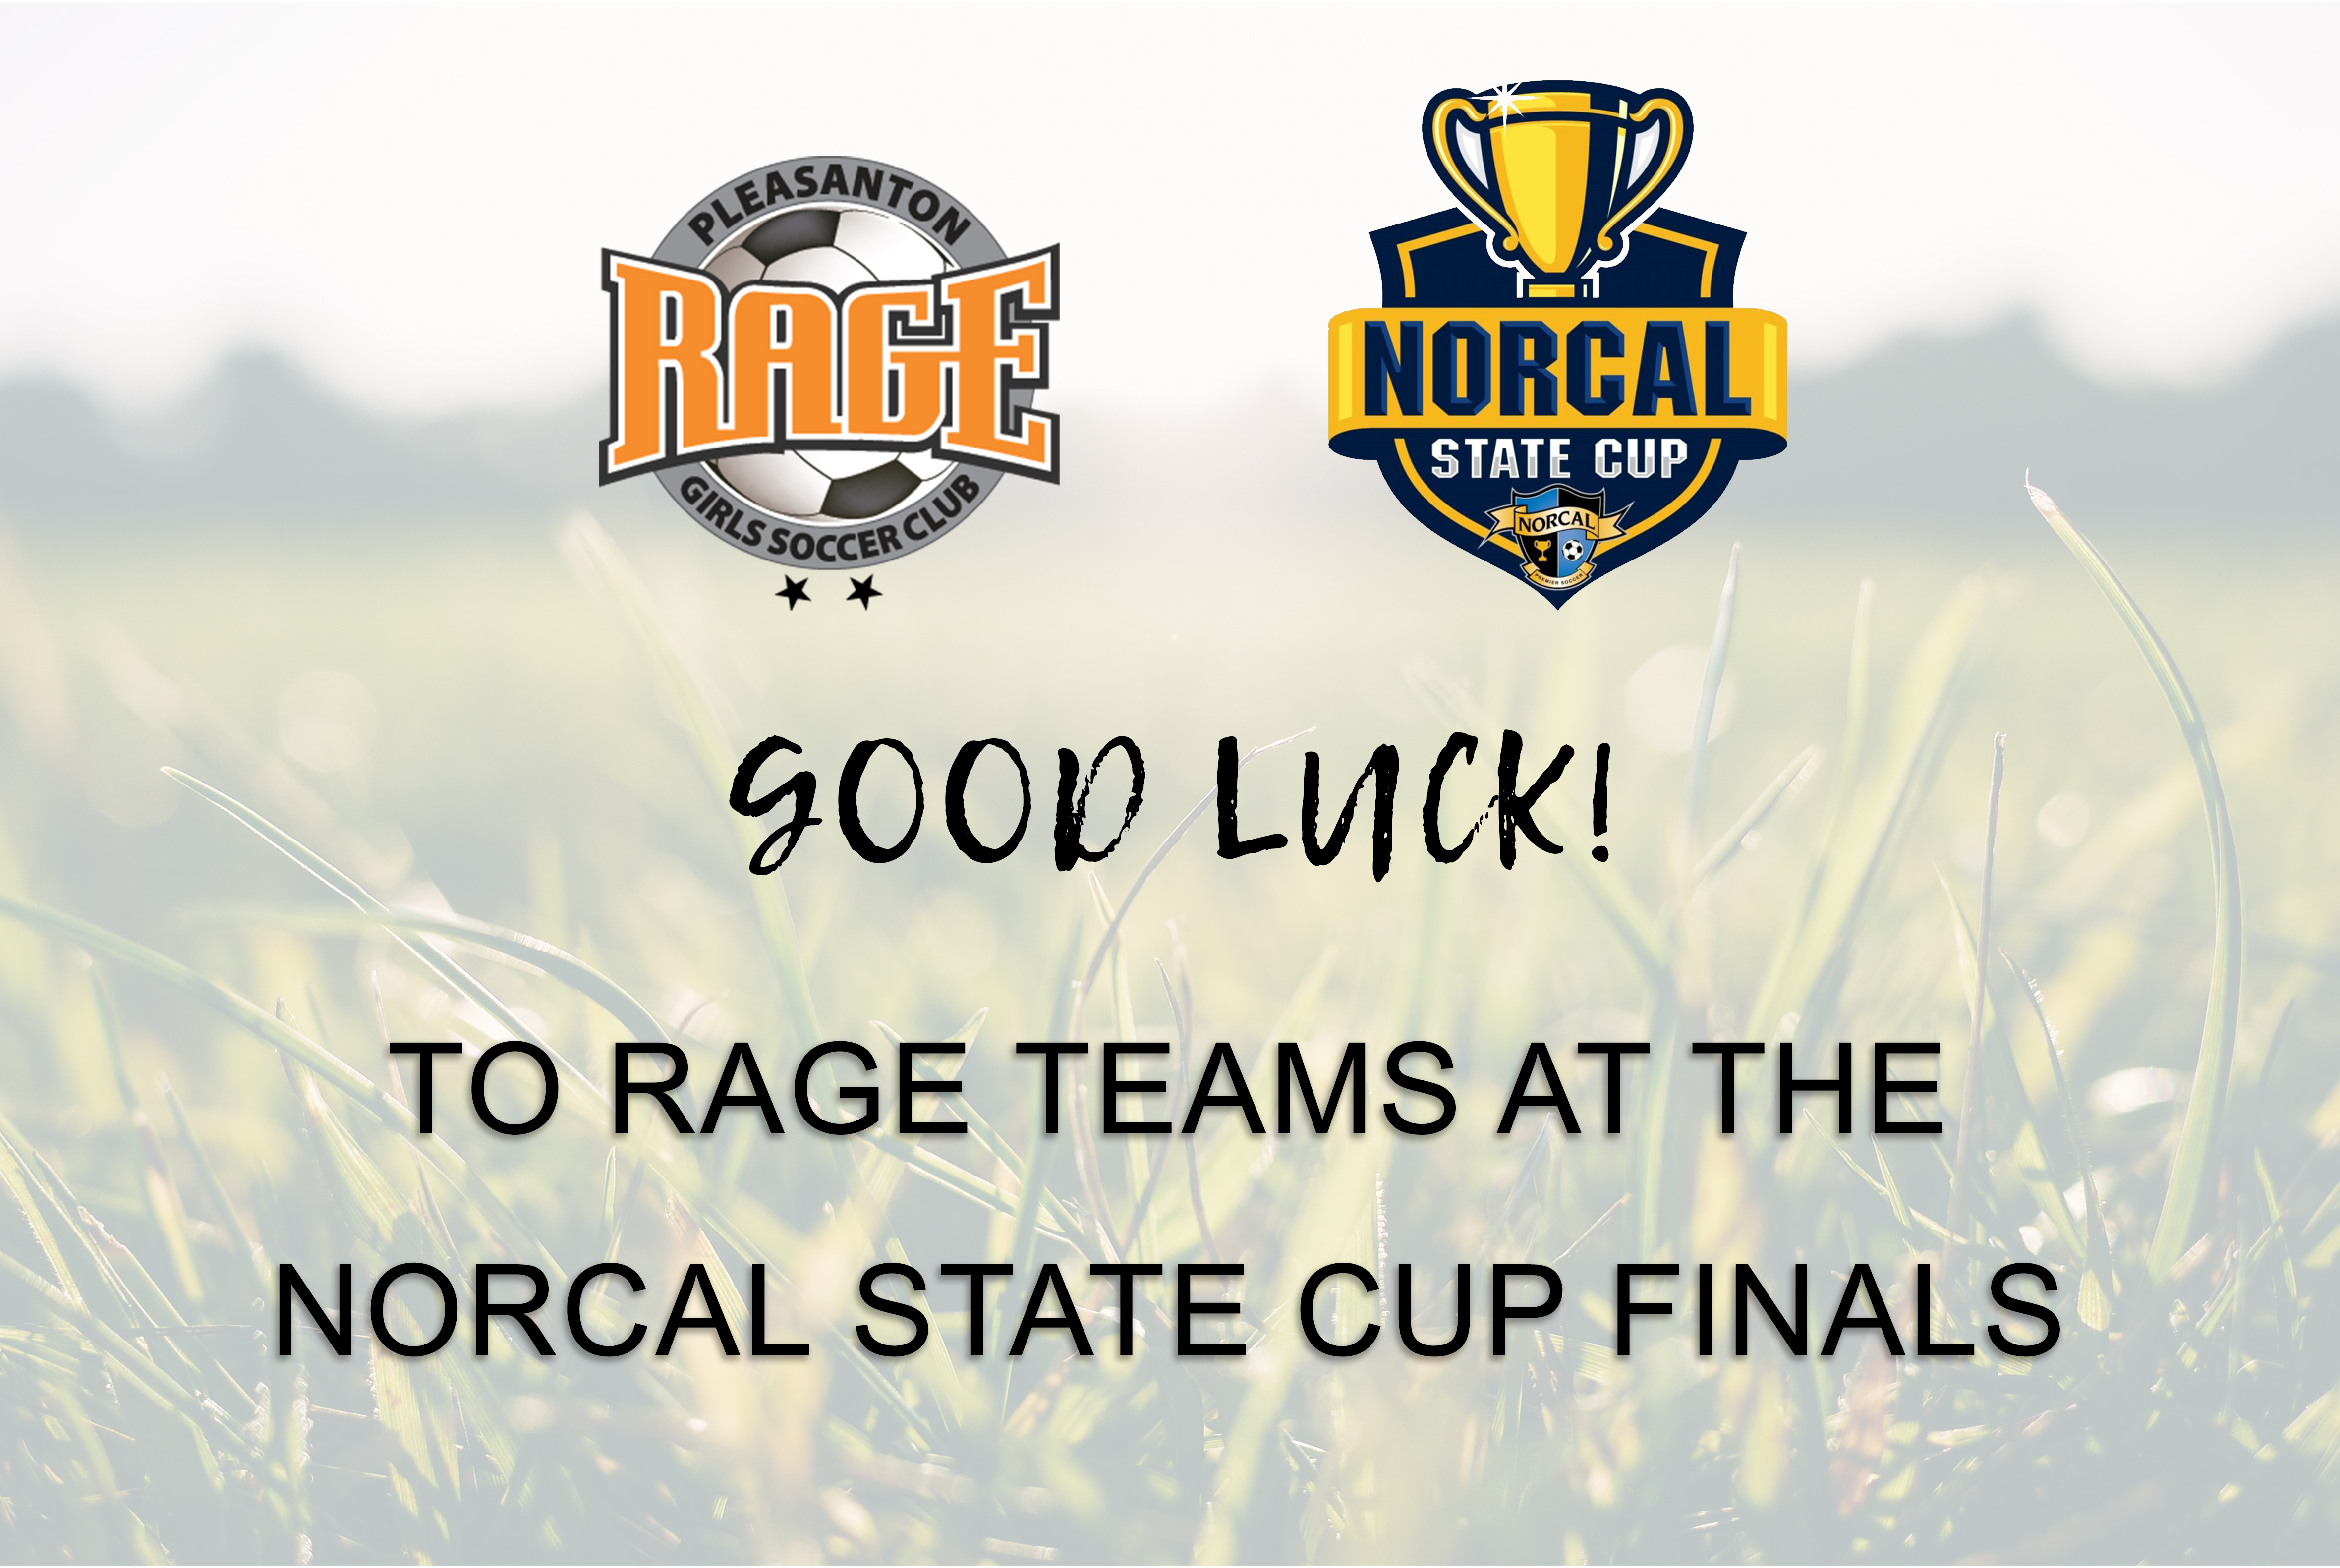 Norcal State Cup